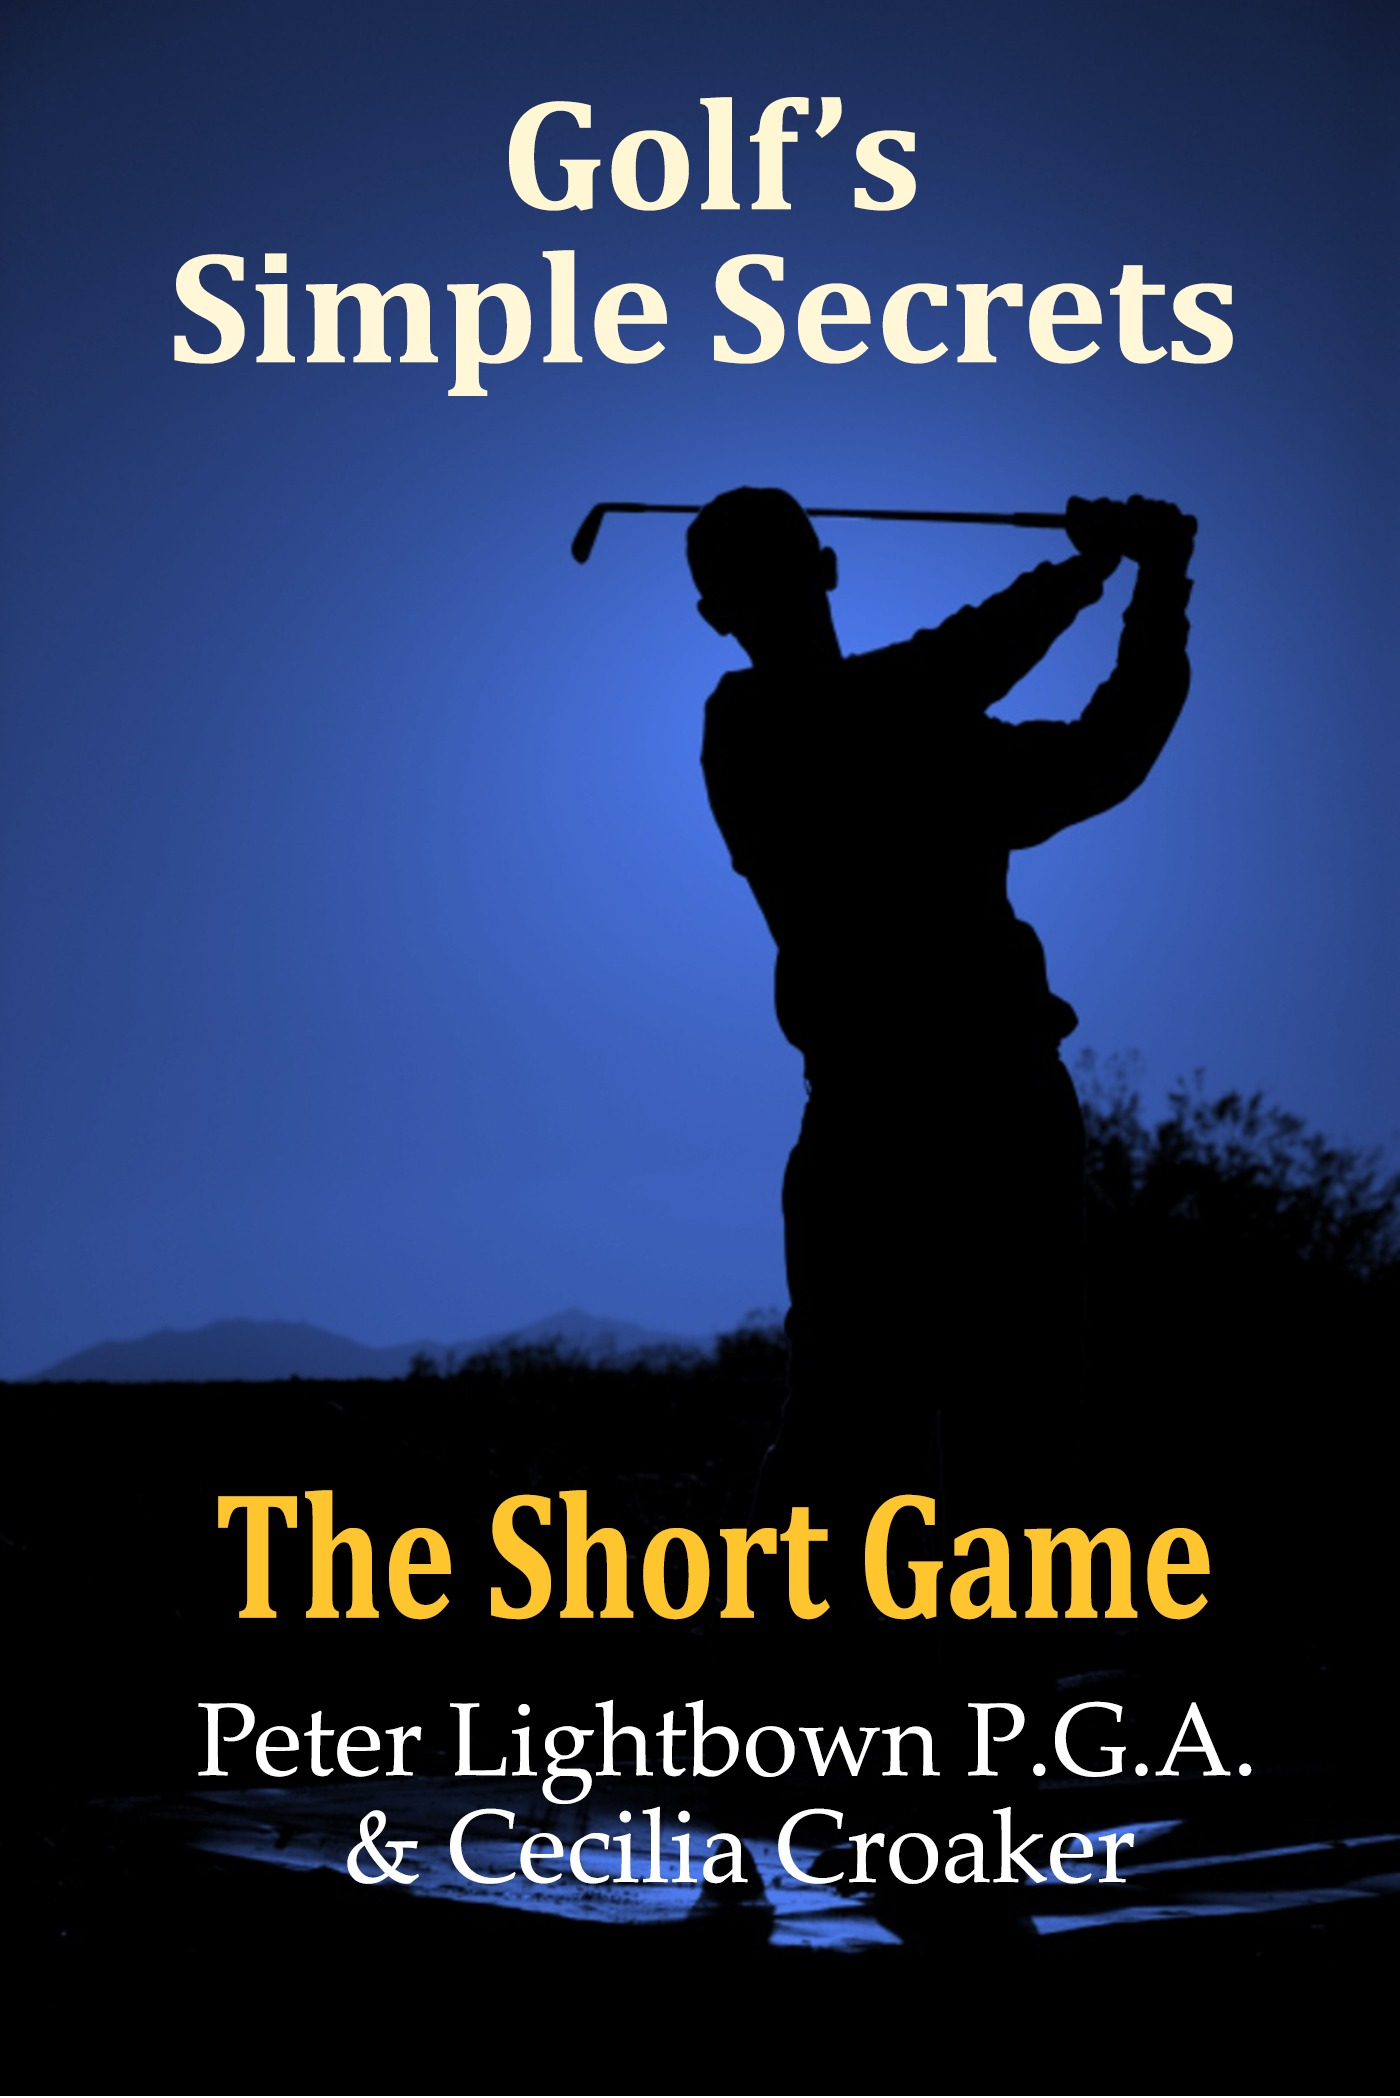 Golf's Simple Secrets: The Short Game